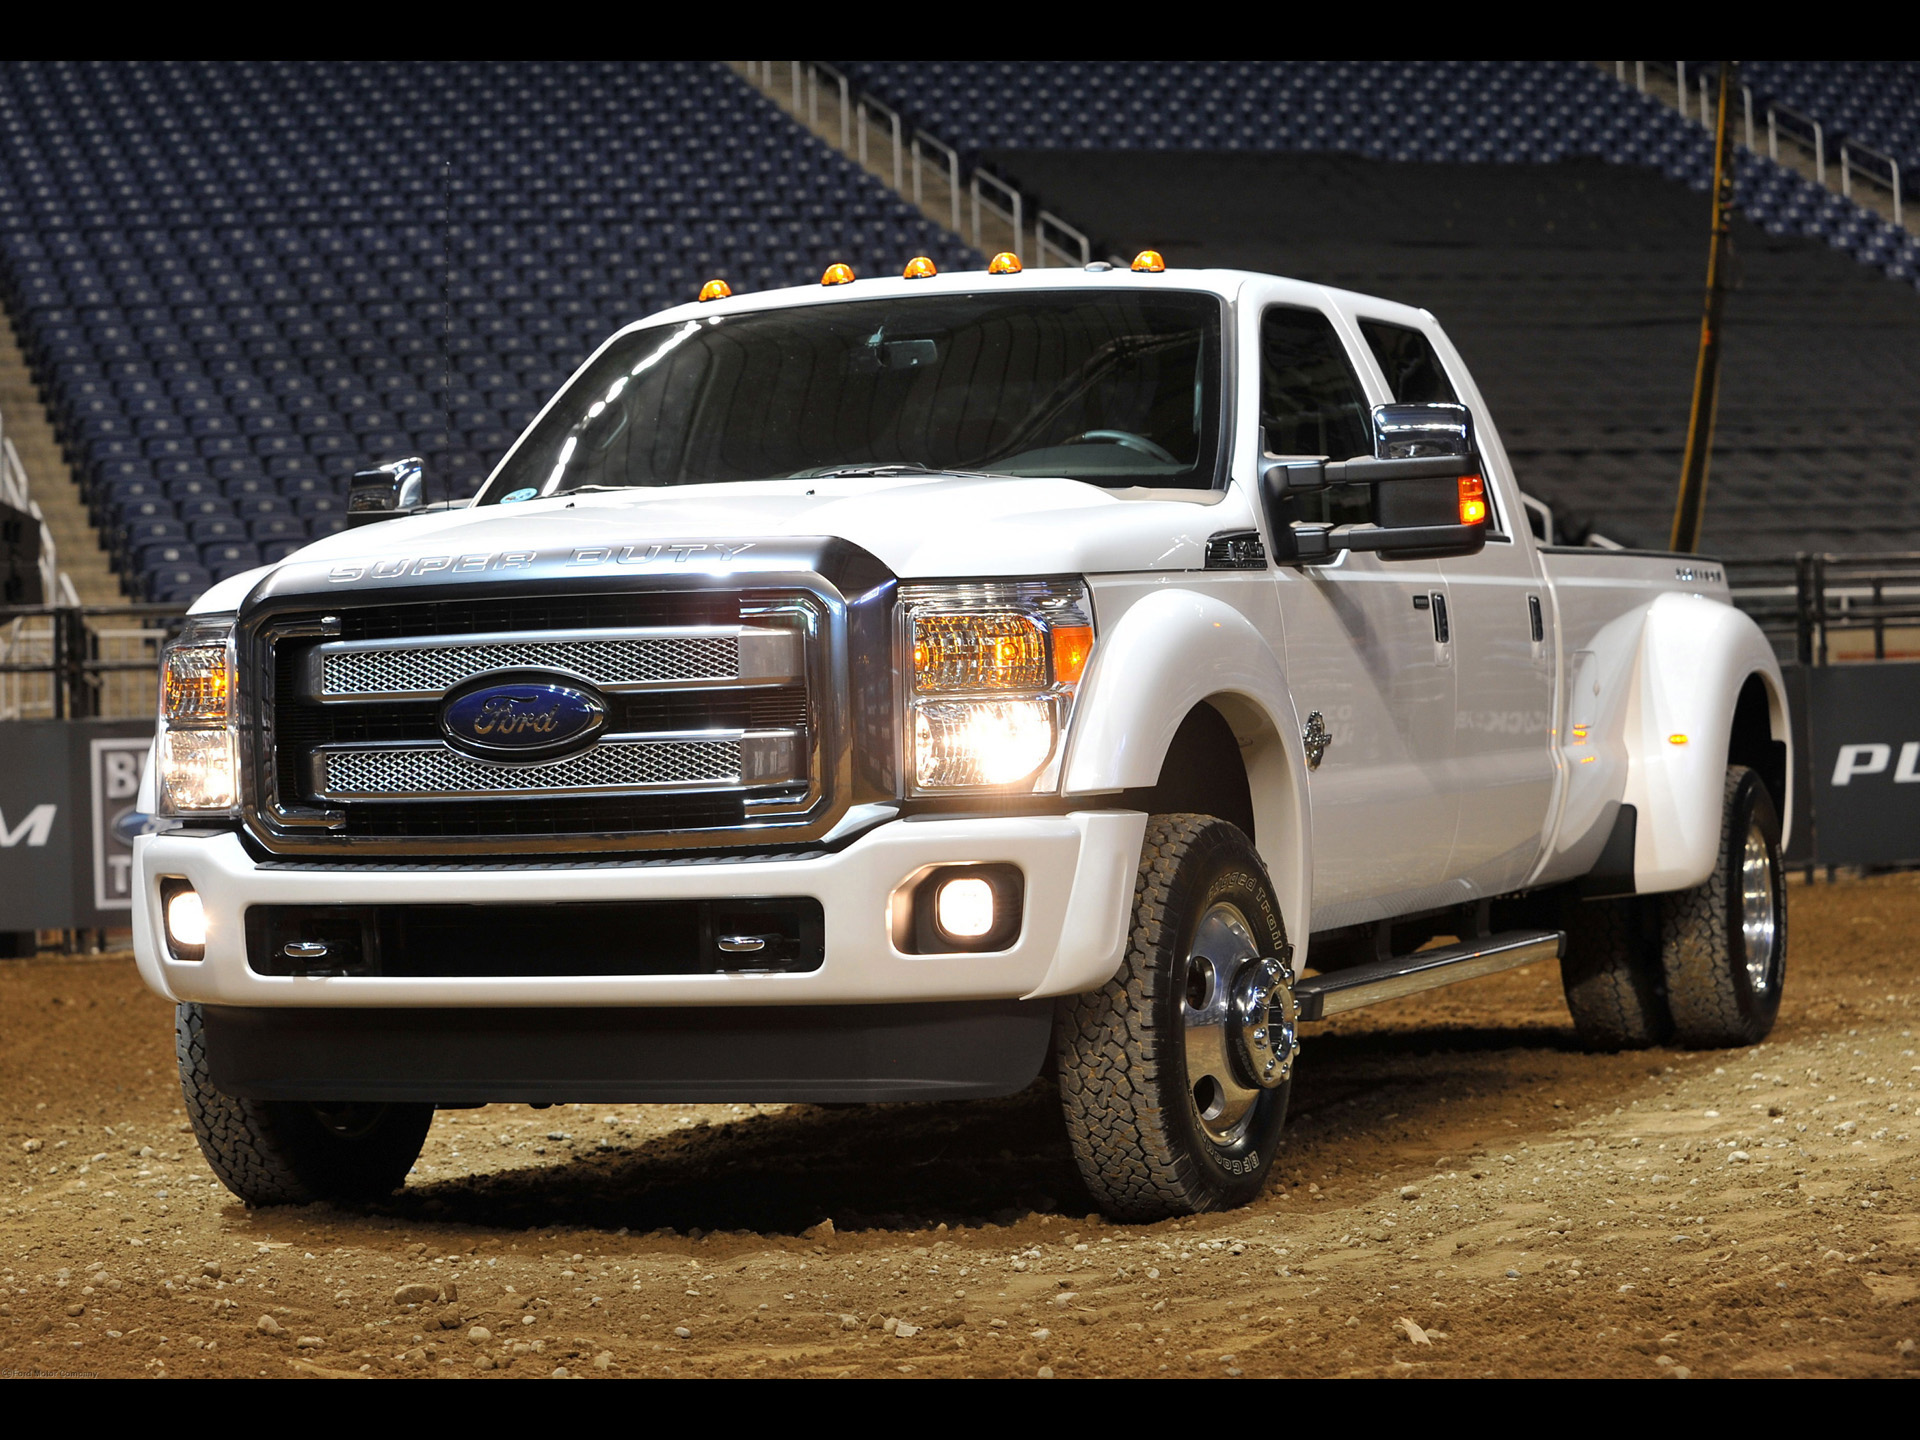 Ford Super Duty >> 2013 Ford F-Series Super Duty Platinum pickup truck 4x4 v wallpaper | 1920x1440 | 113637 ...